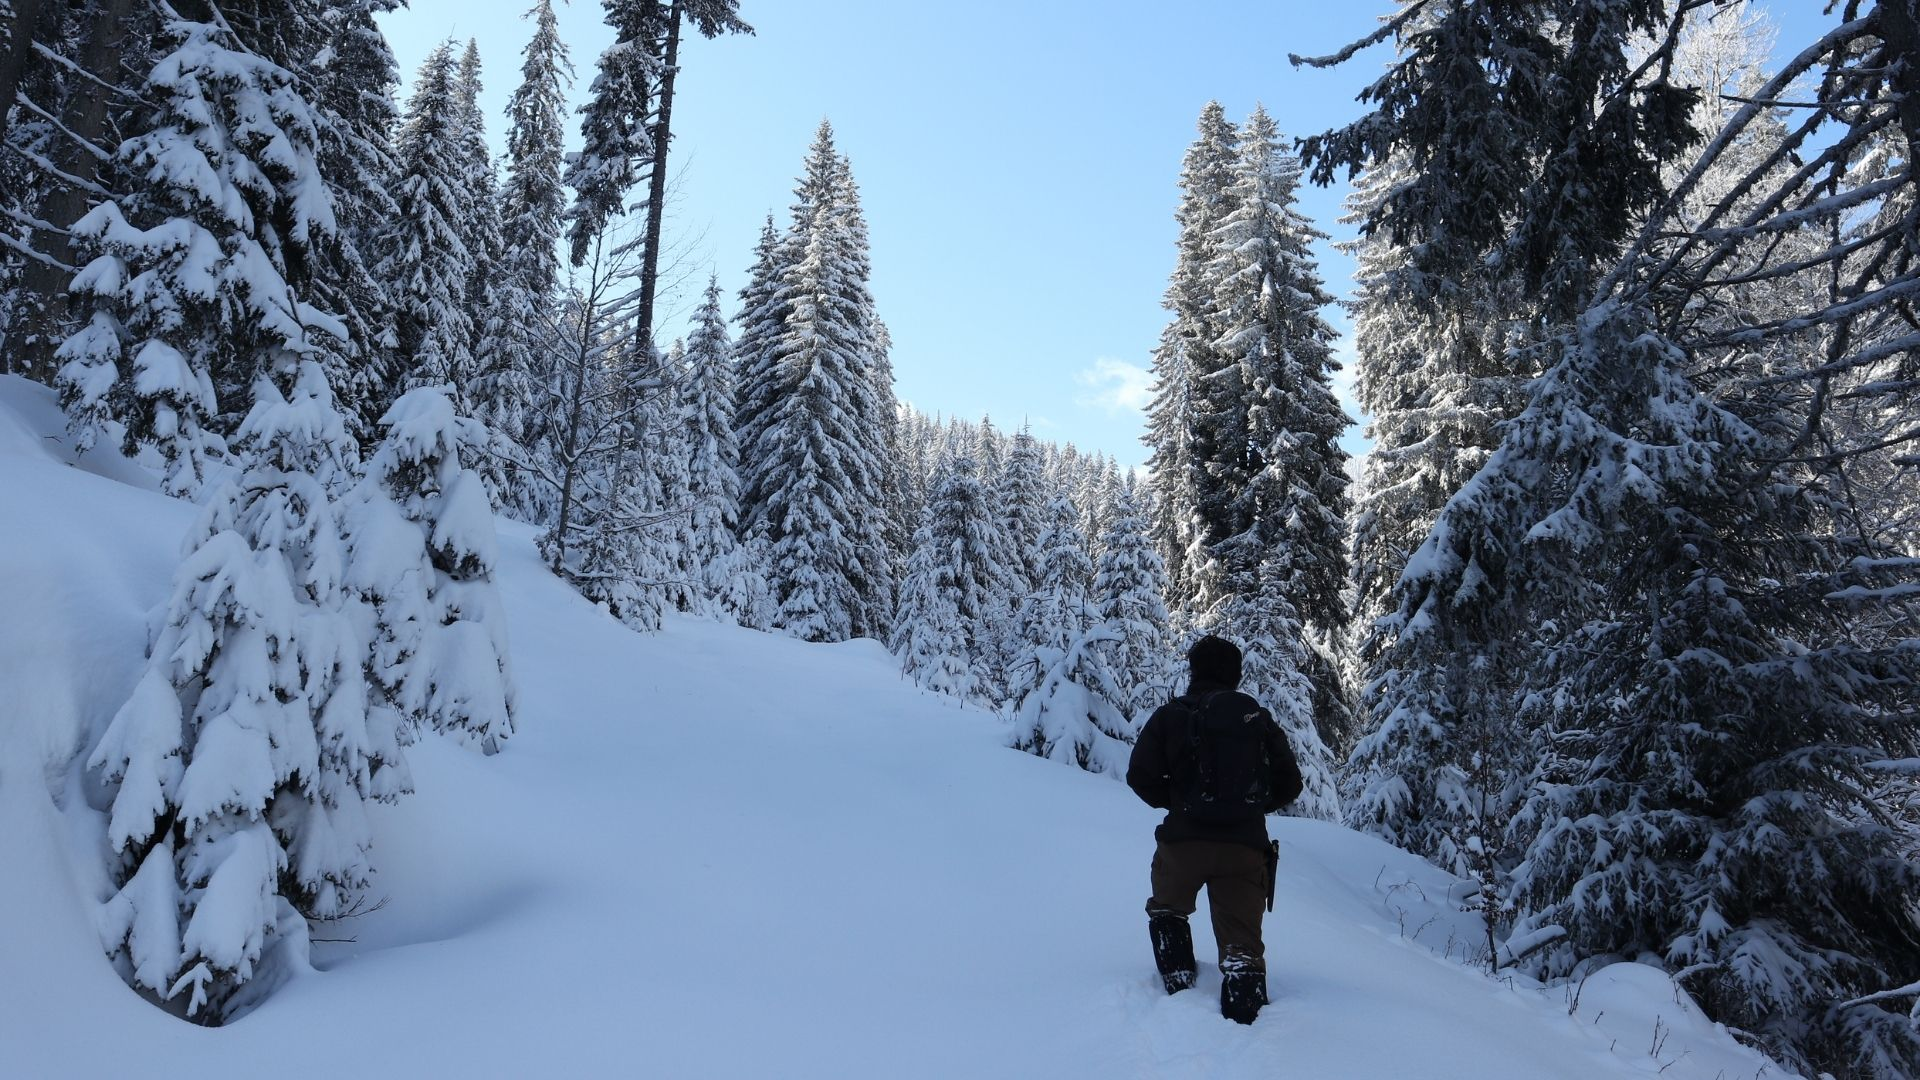 Hiking in snow- making snow path